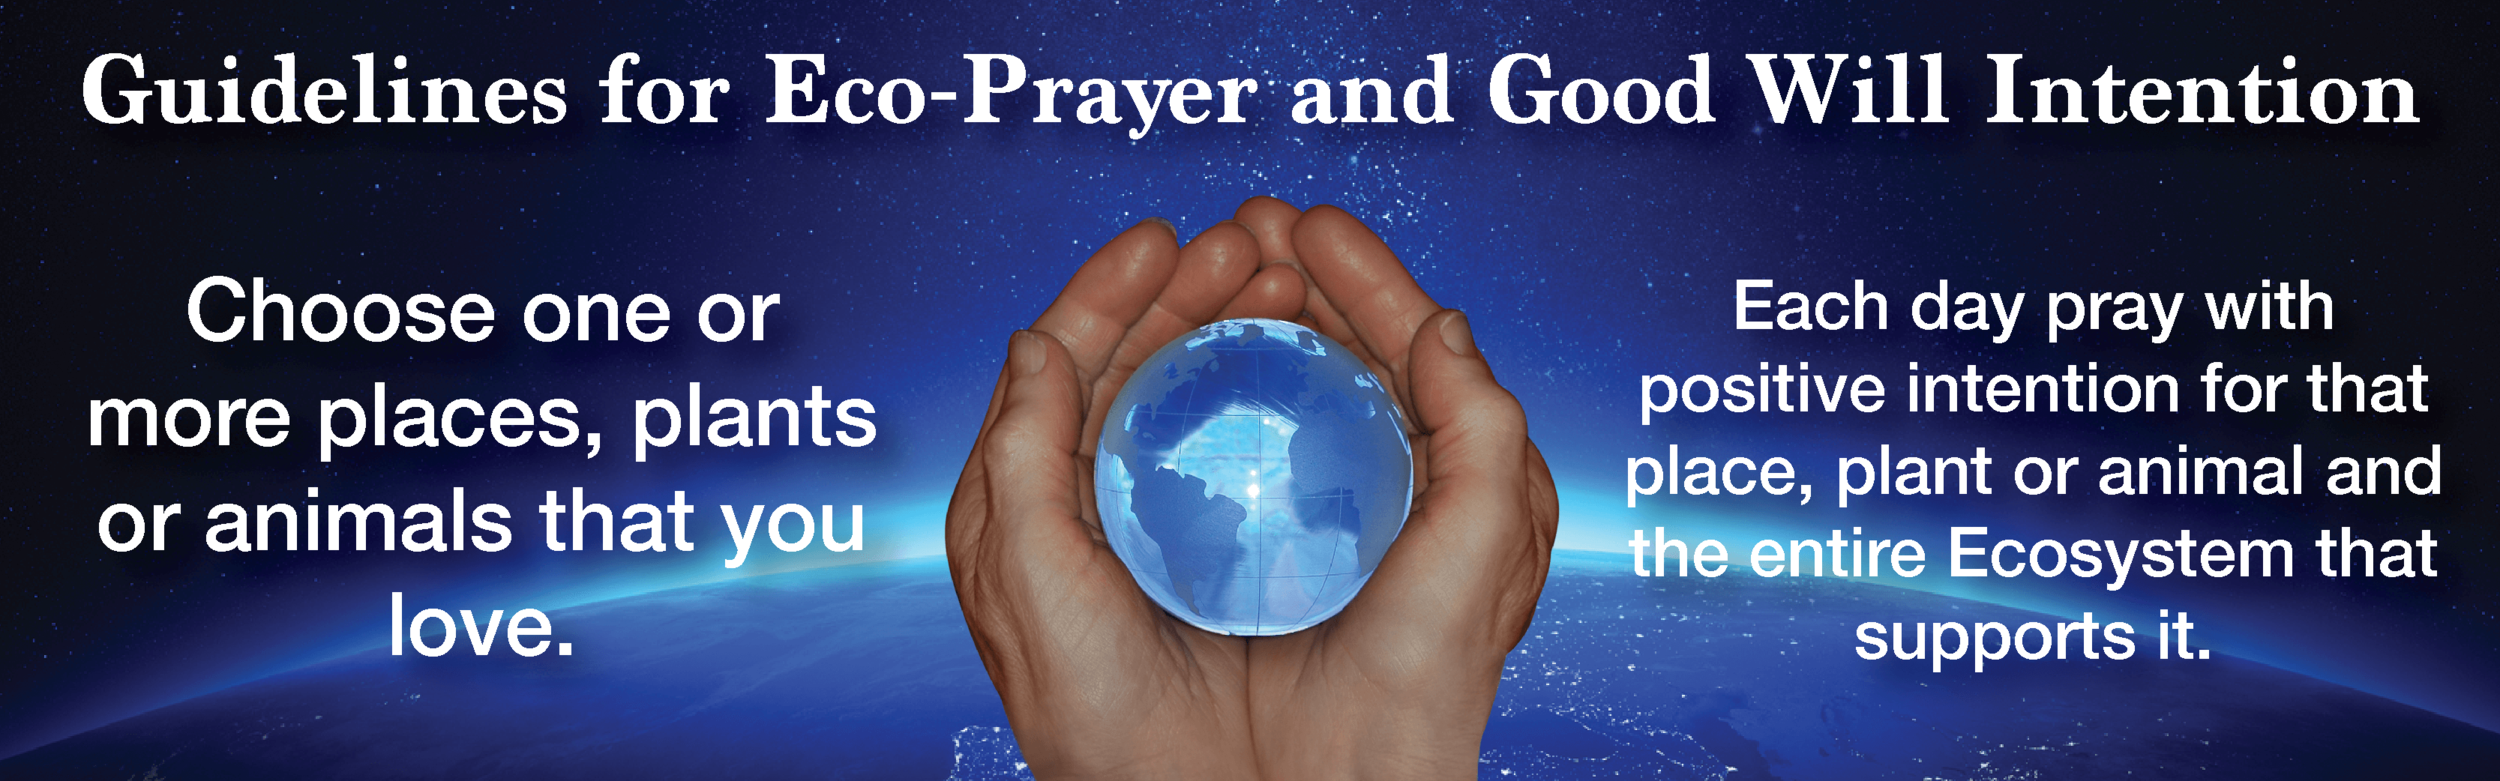 Eco-Prayer Guidelines Banner 1.png